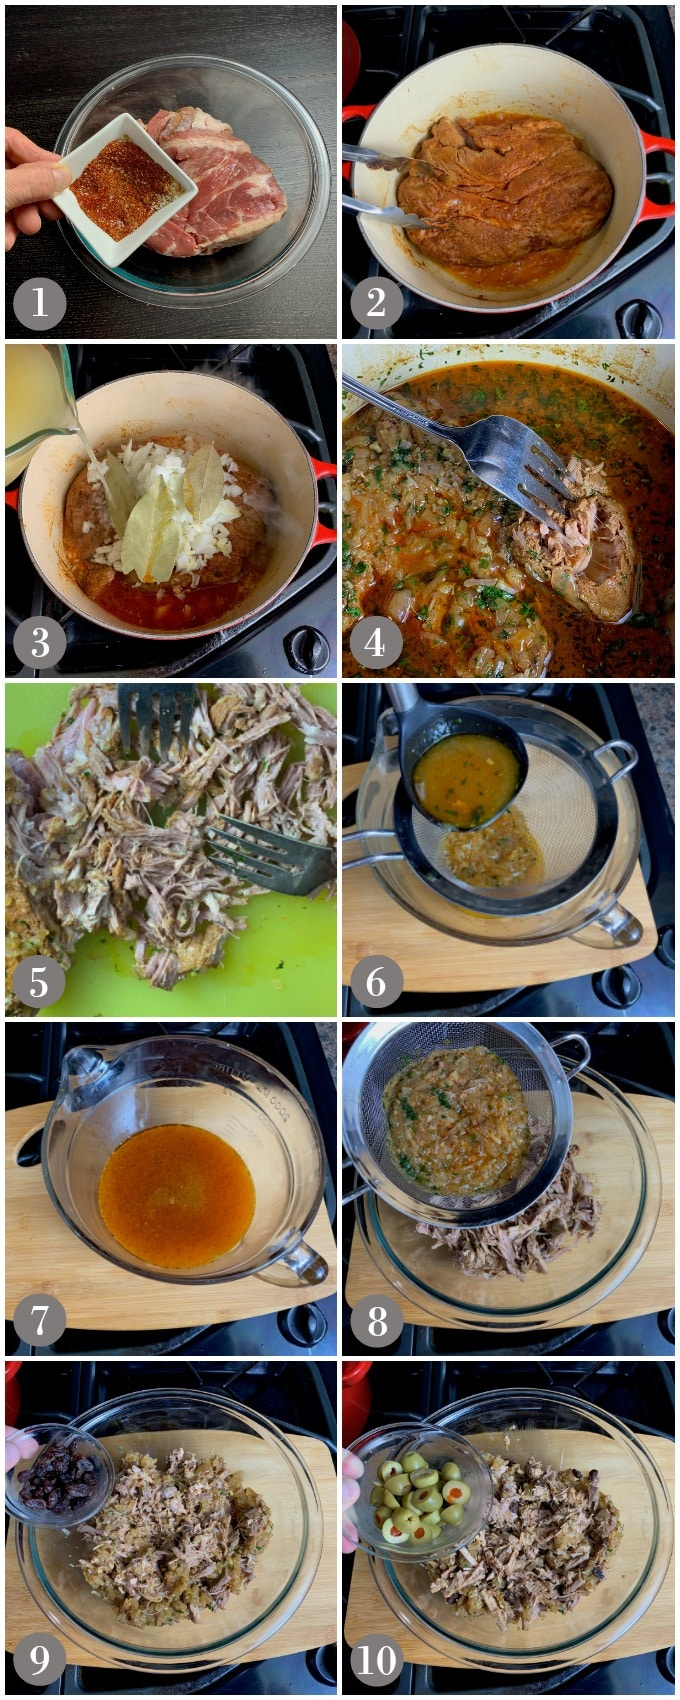 A collage of photos showing the steps to make the filling for pork tamales in a pot on the stove.